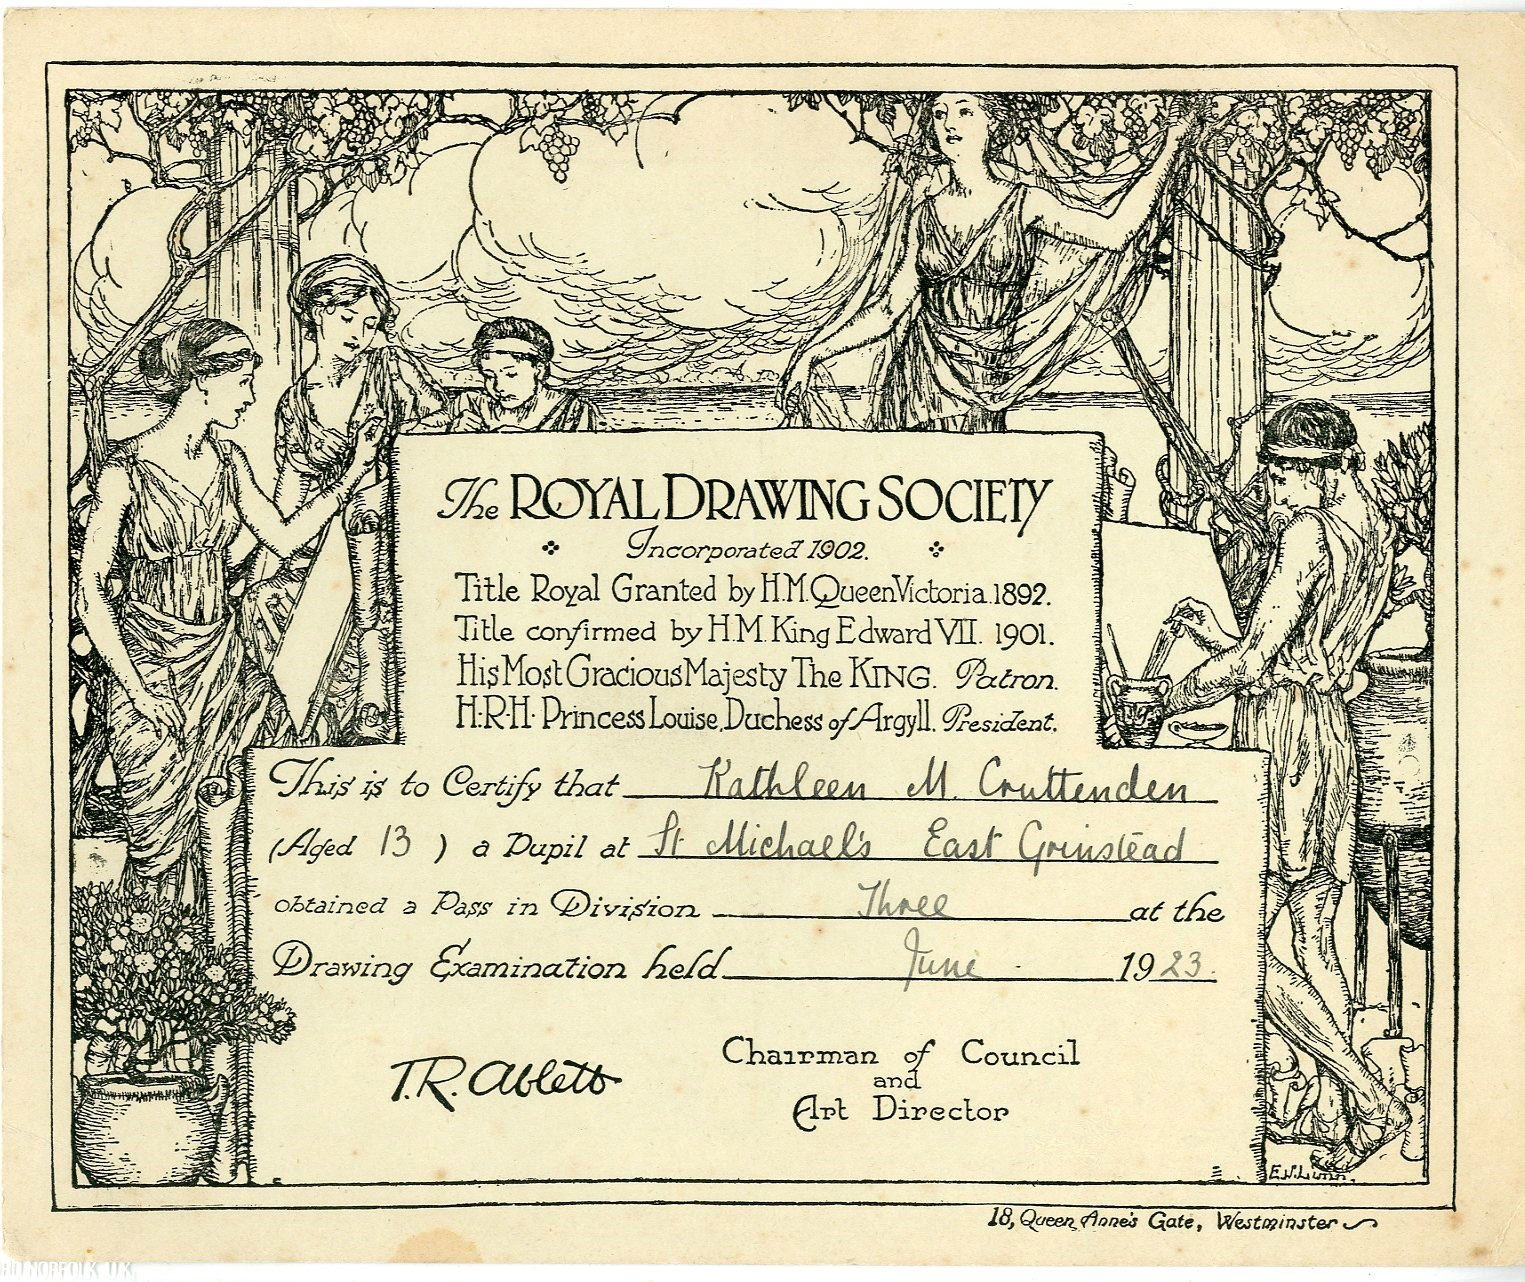 East Grinstead Museum – Royal Drawing Society Certificate for Kathleen M. Cruttenden